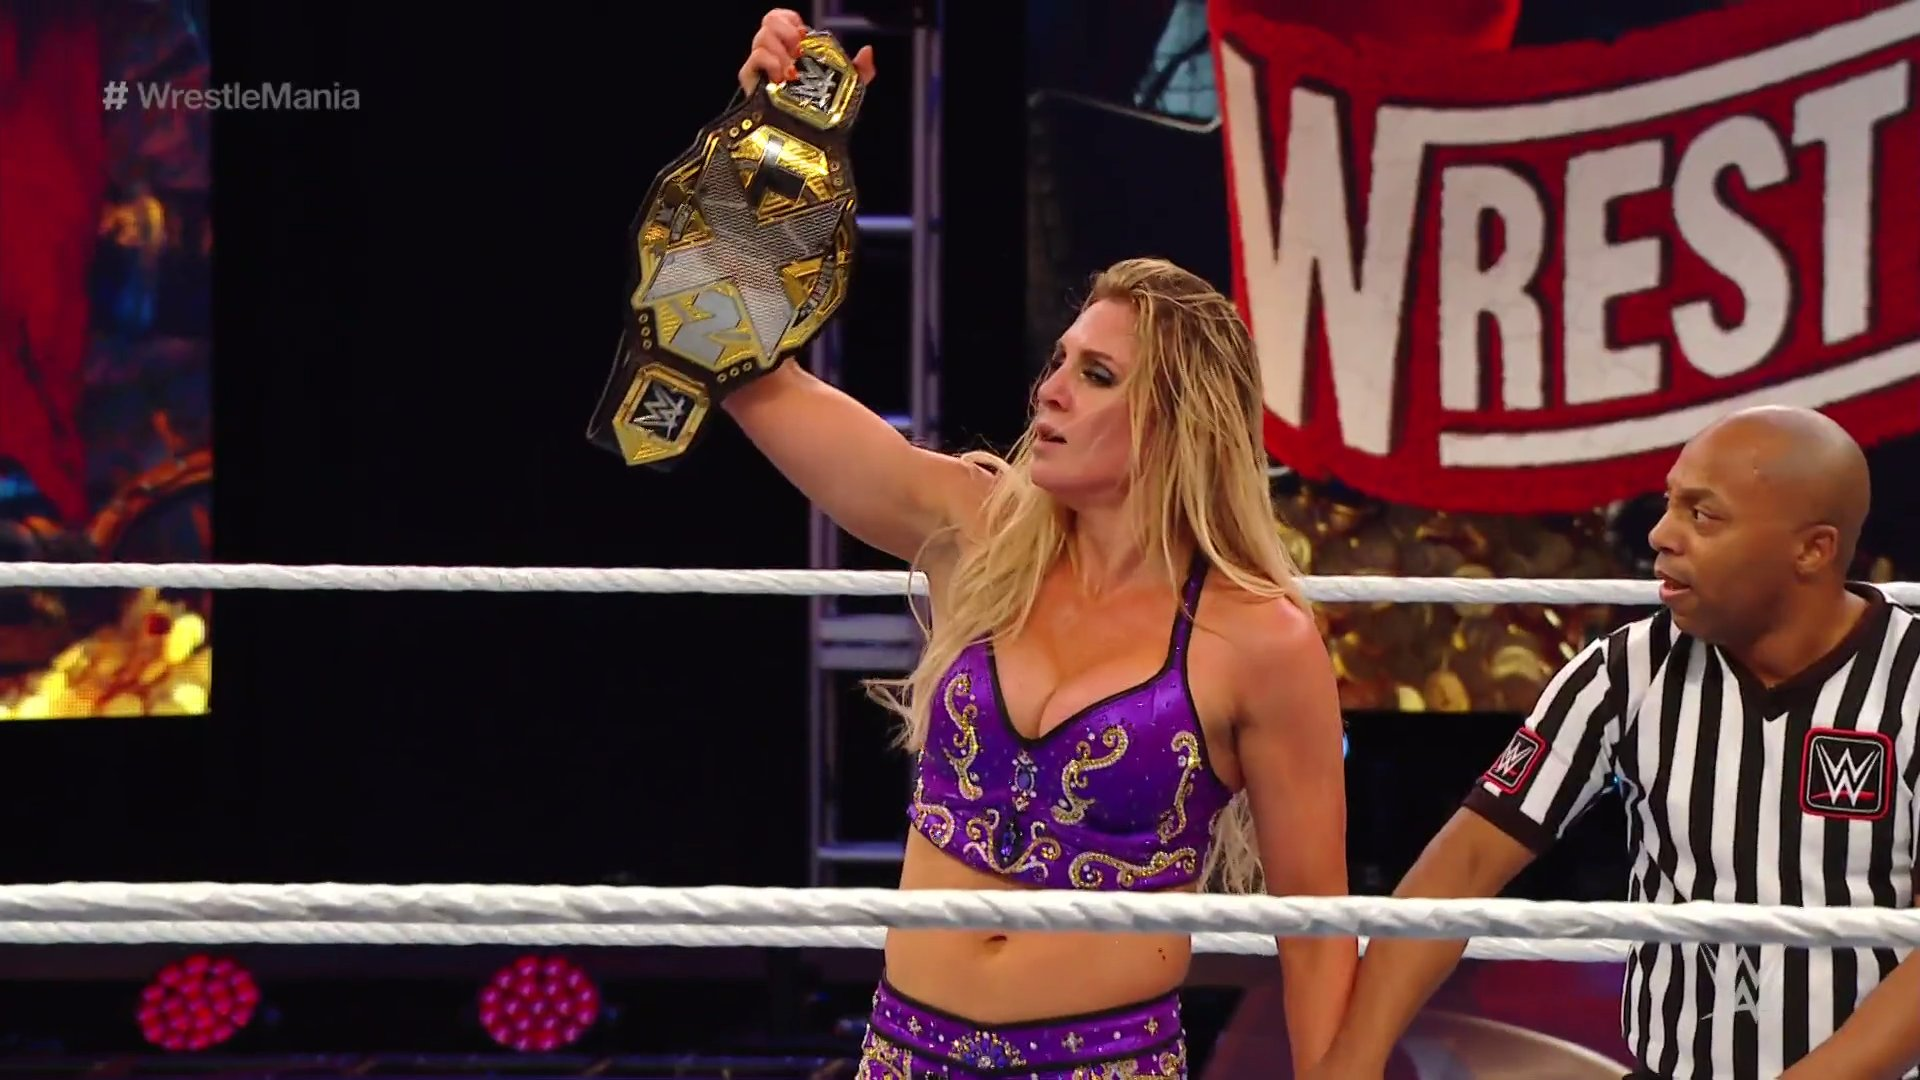 Drew McIntyre And Charlotte Flair Become New Champions At WWE Wrestlemania 2